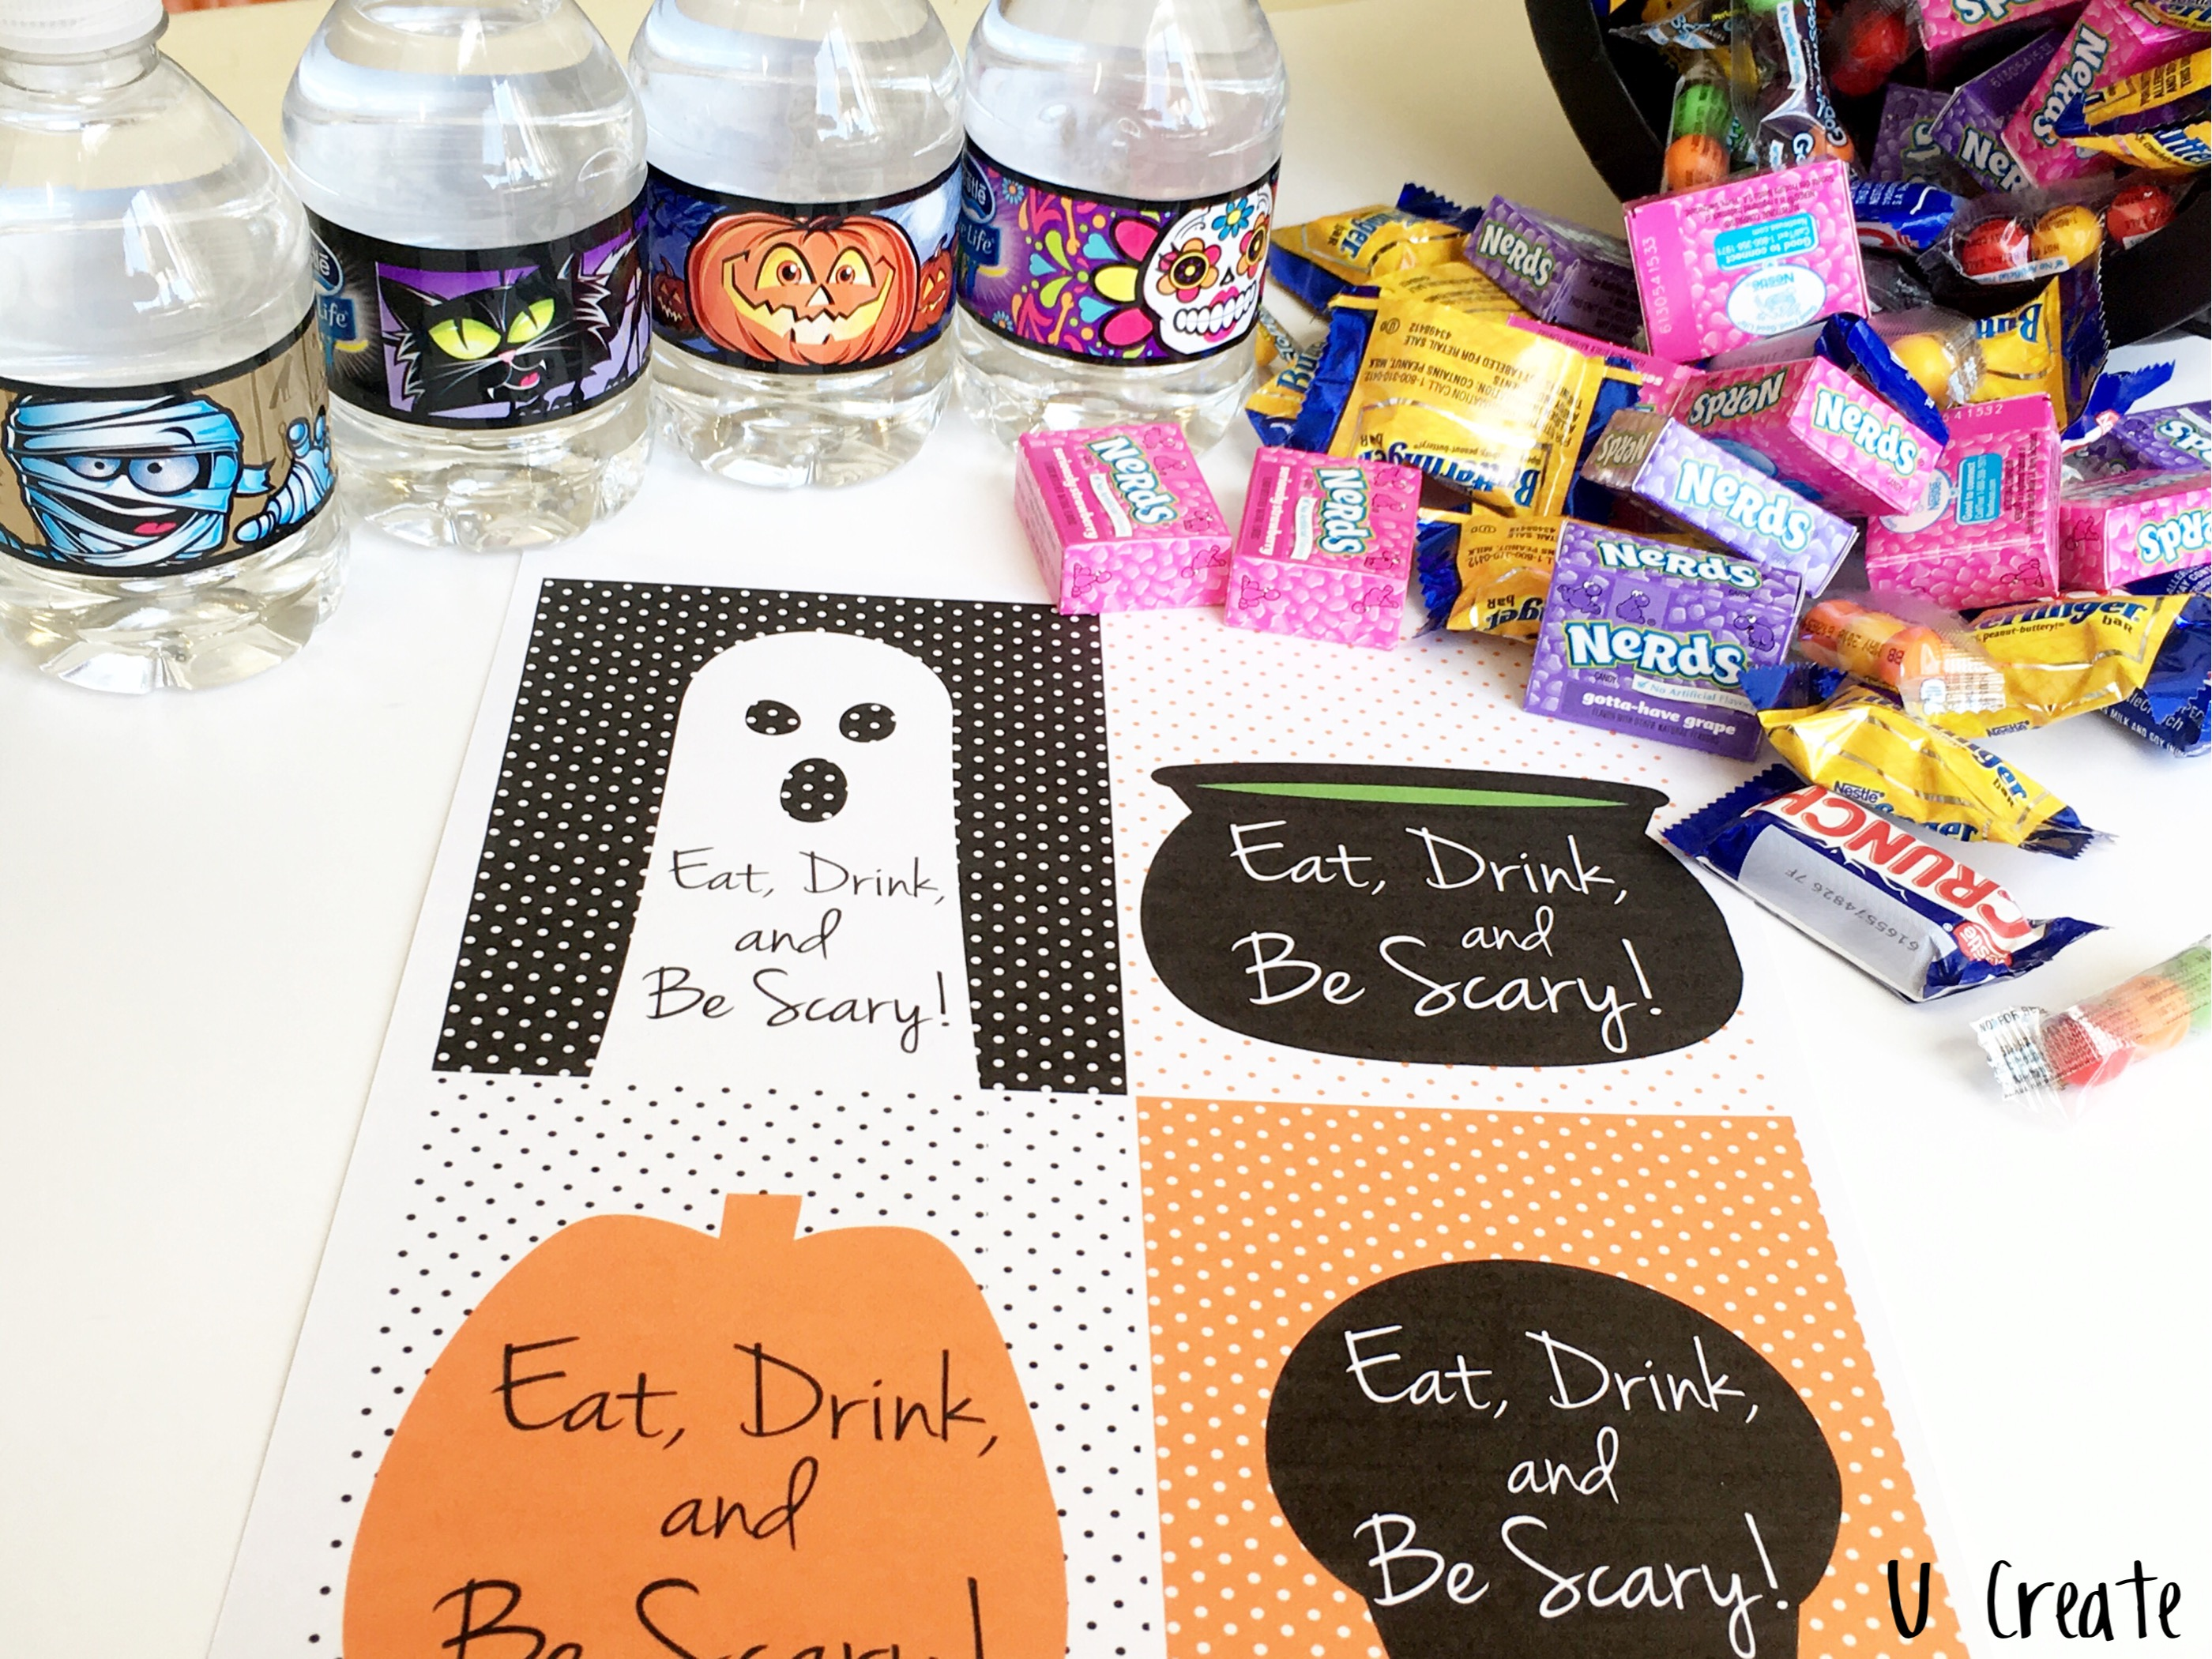 Eat, Drink, and be Scary Halloween Goodies!